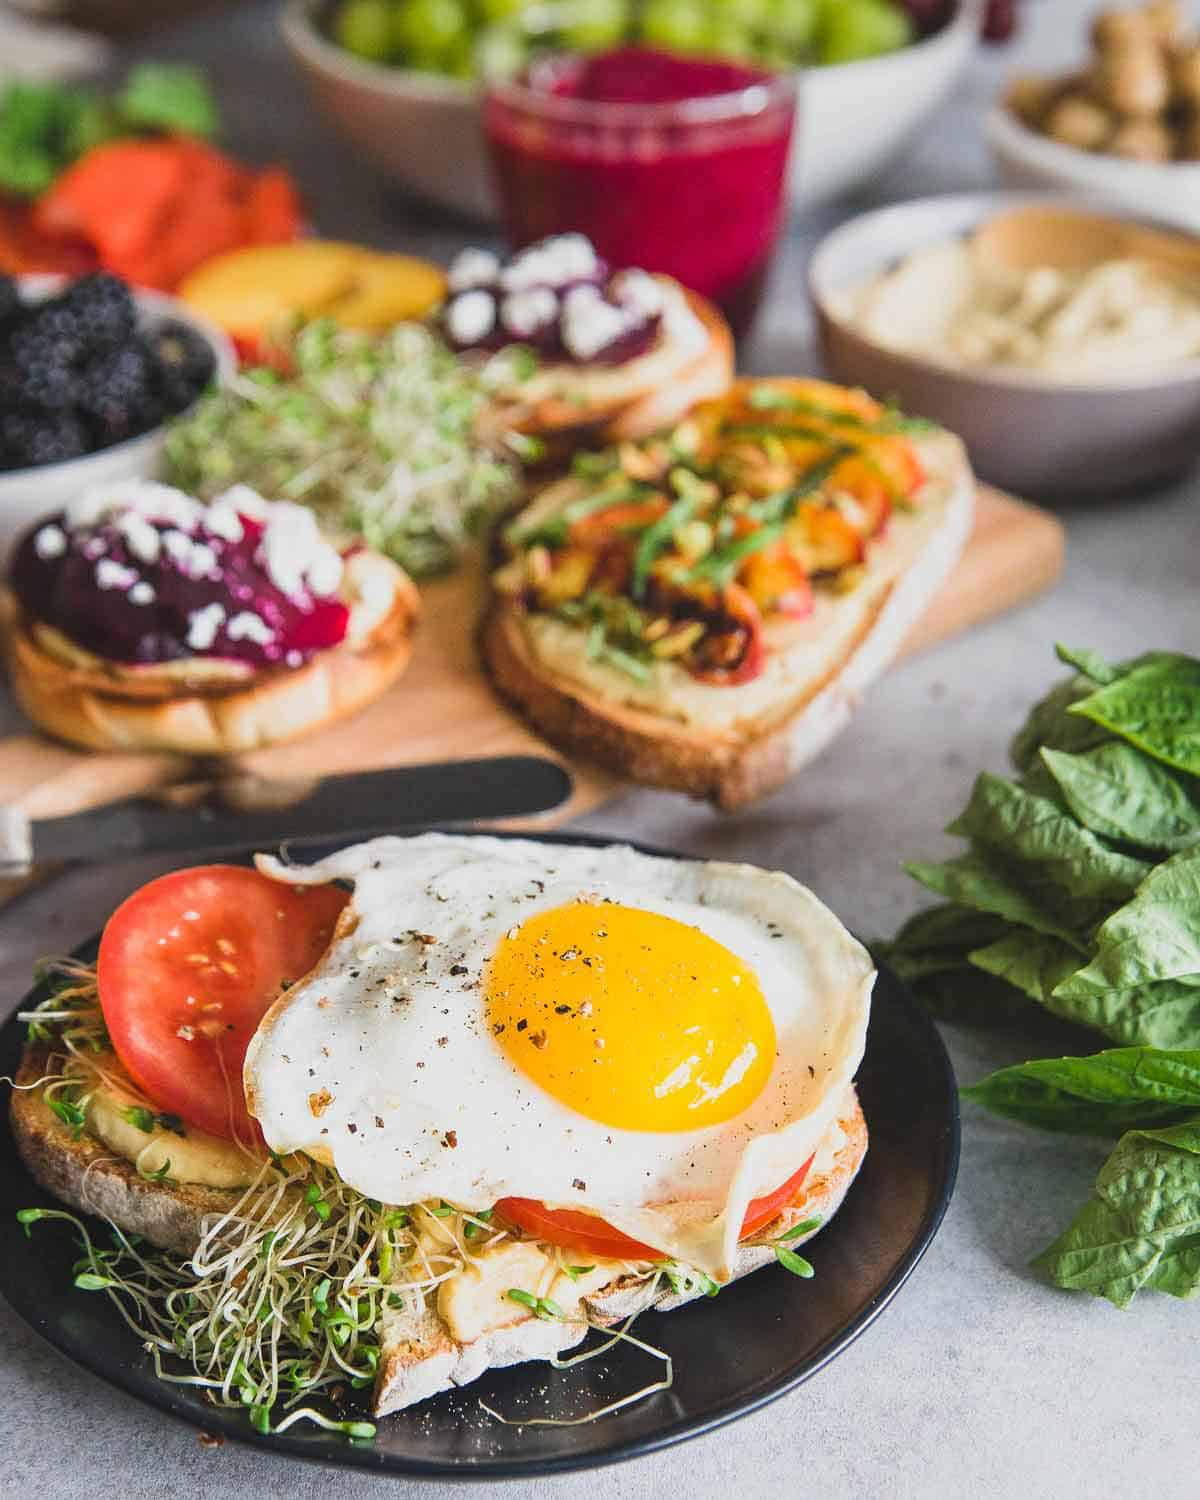 Hummus sourdough toast with sprouts, tomato and a fried egg is the perfect savory bite with this easy beet smoothie.